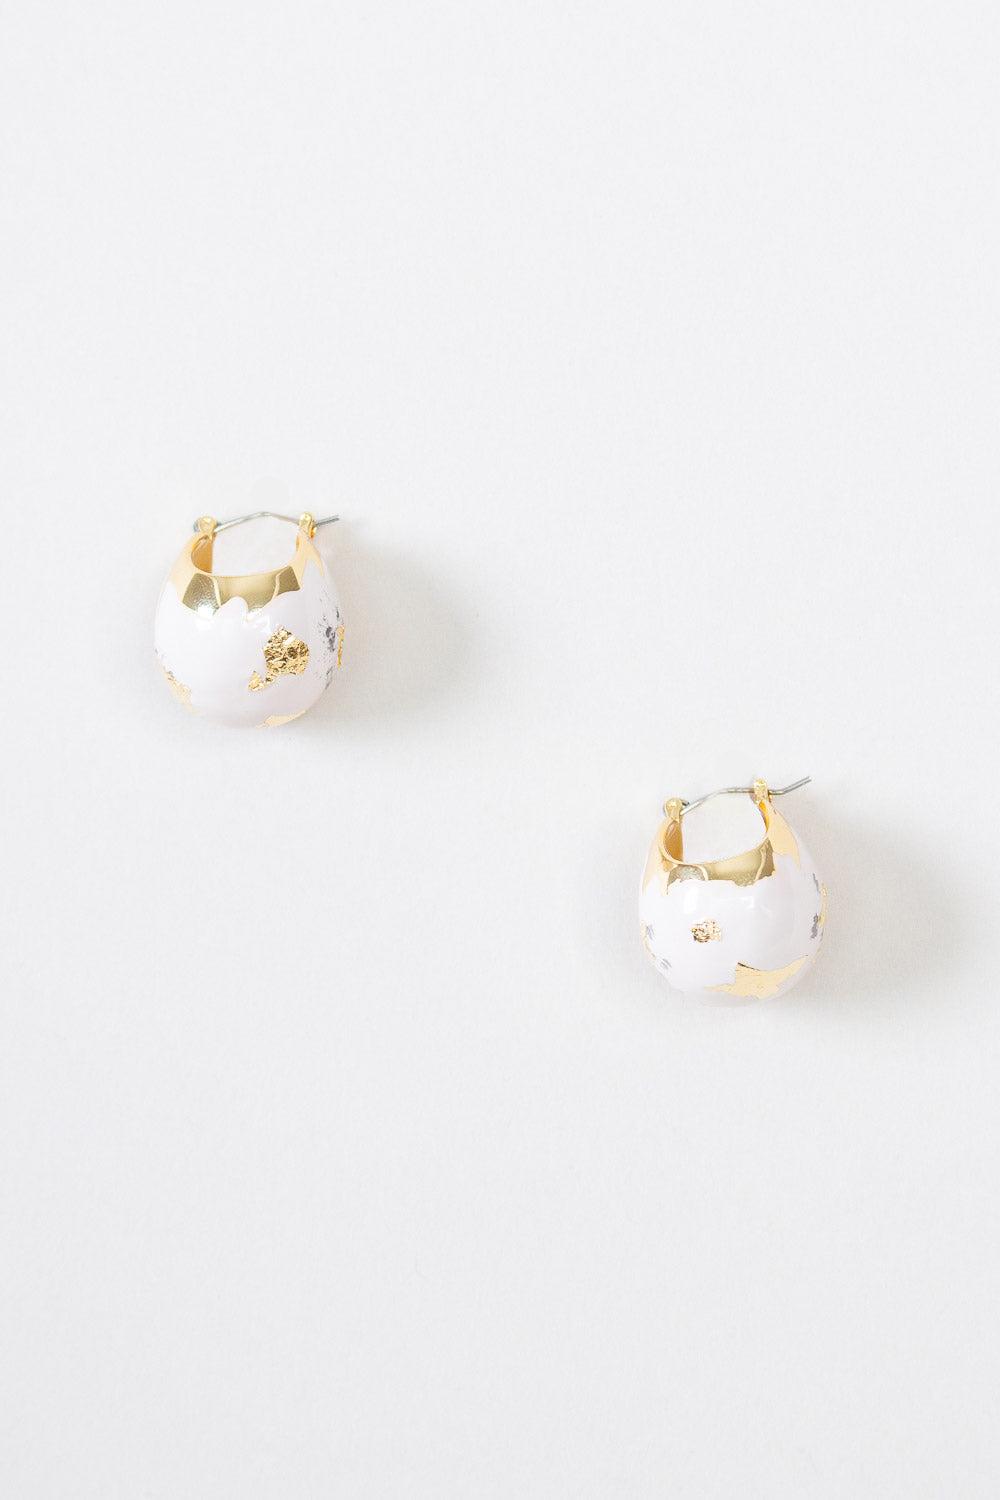 Enamel Keel Earring in Gold/Pale Blush